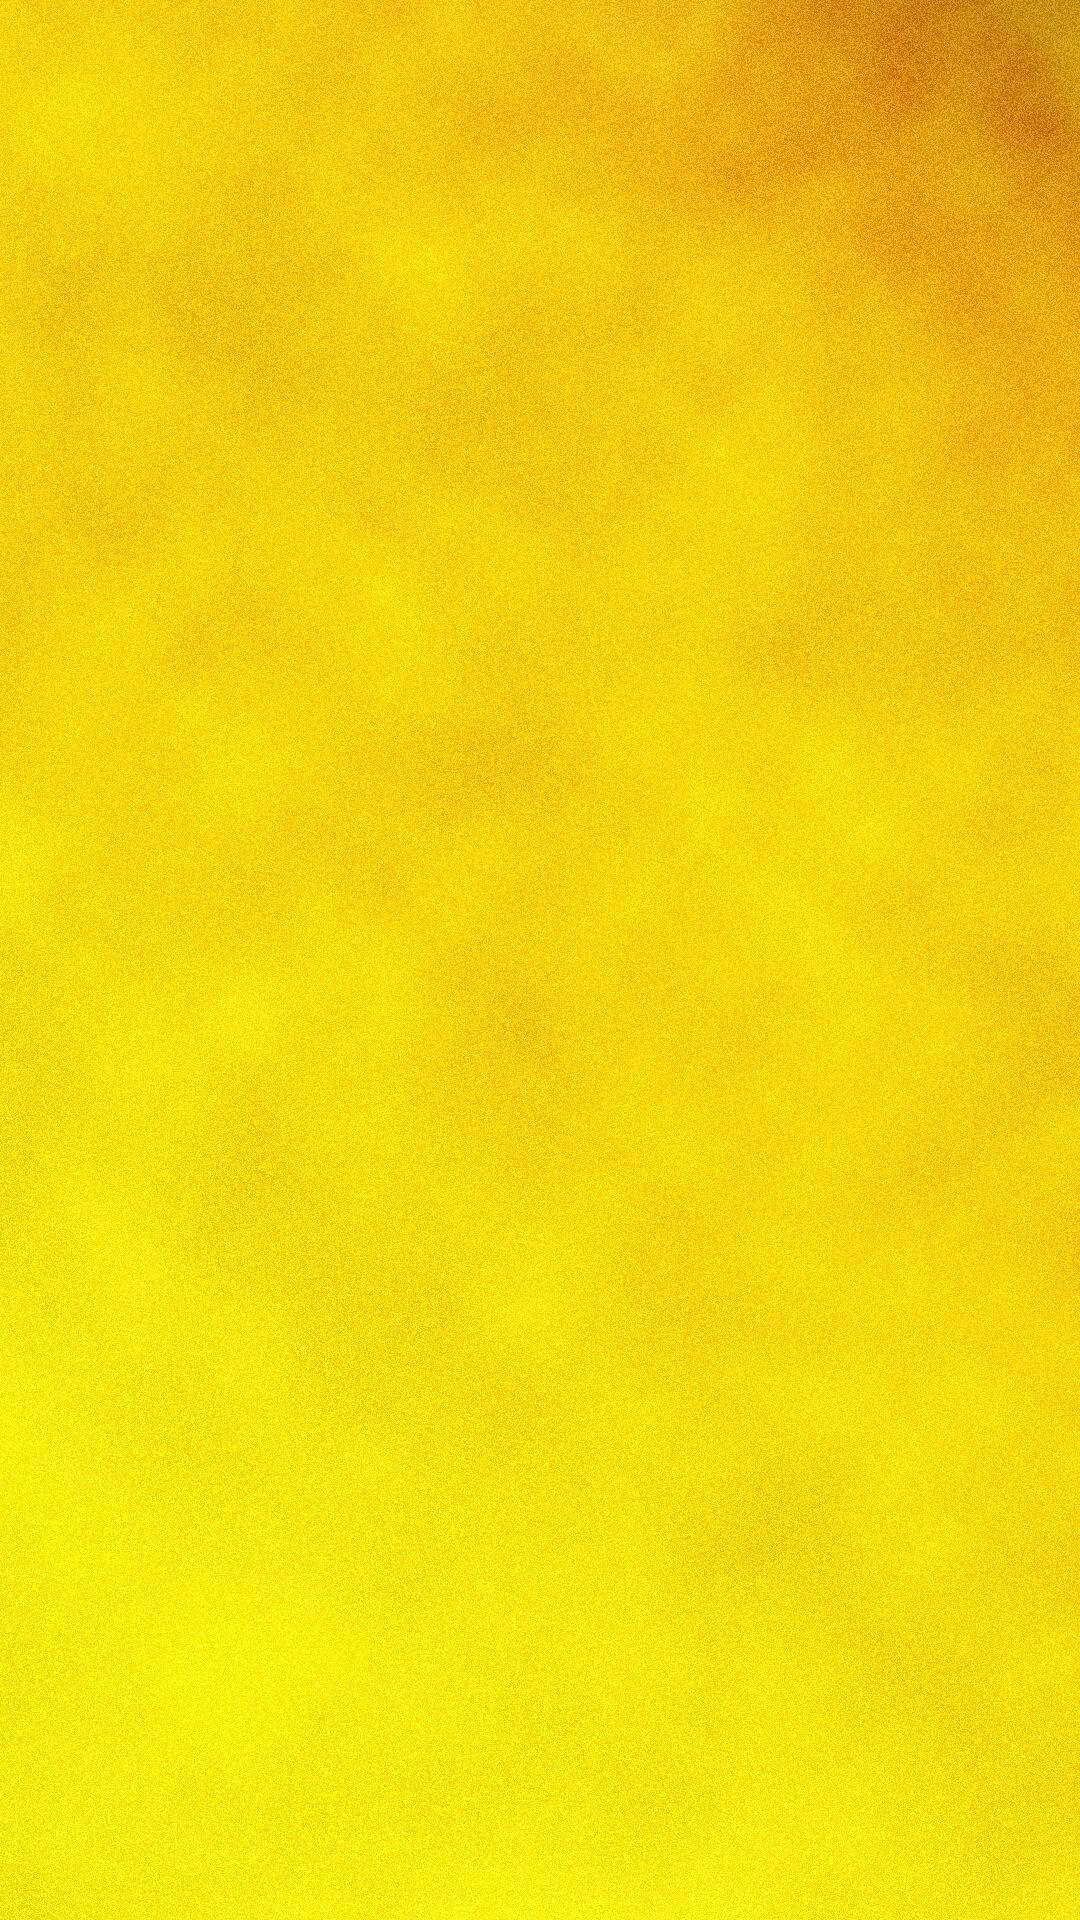 Res: 1080x1920, http://www.vactualpapers.com/gallery/abstract-colorful-